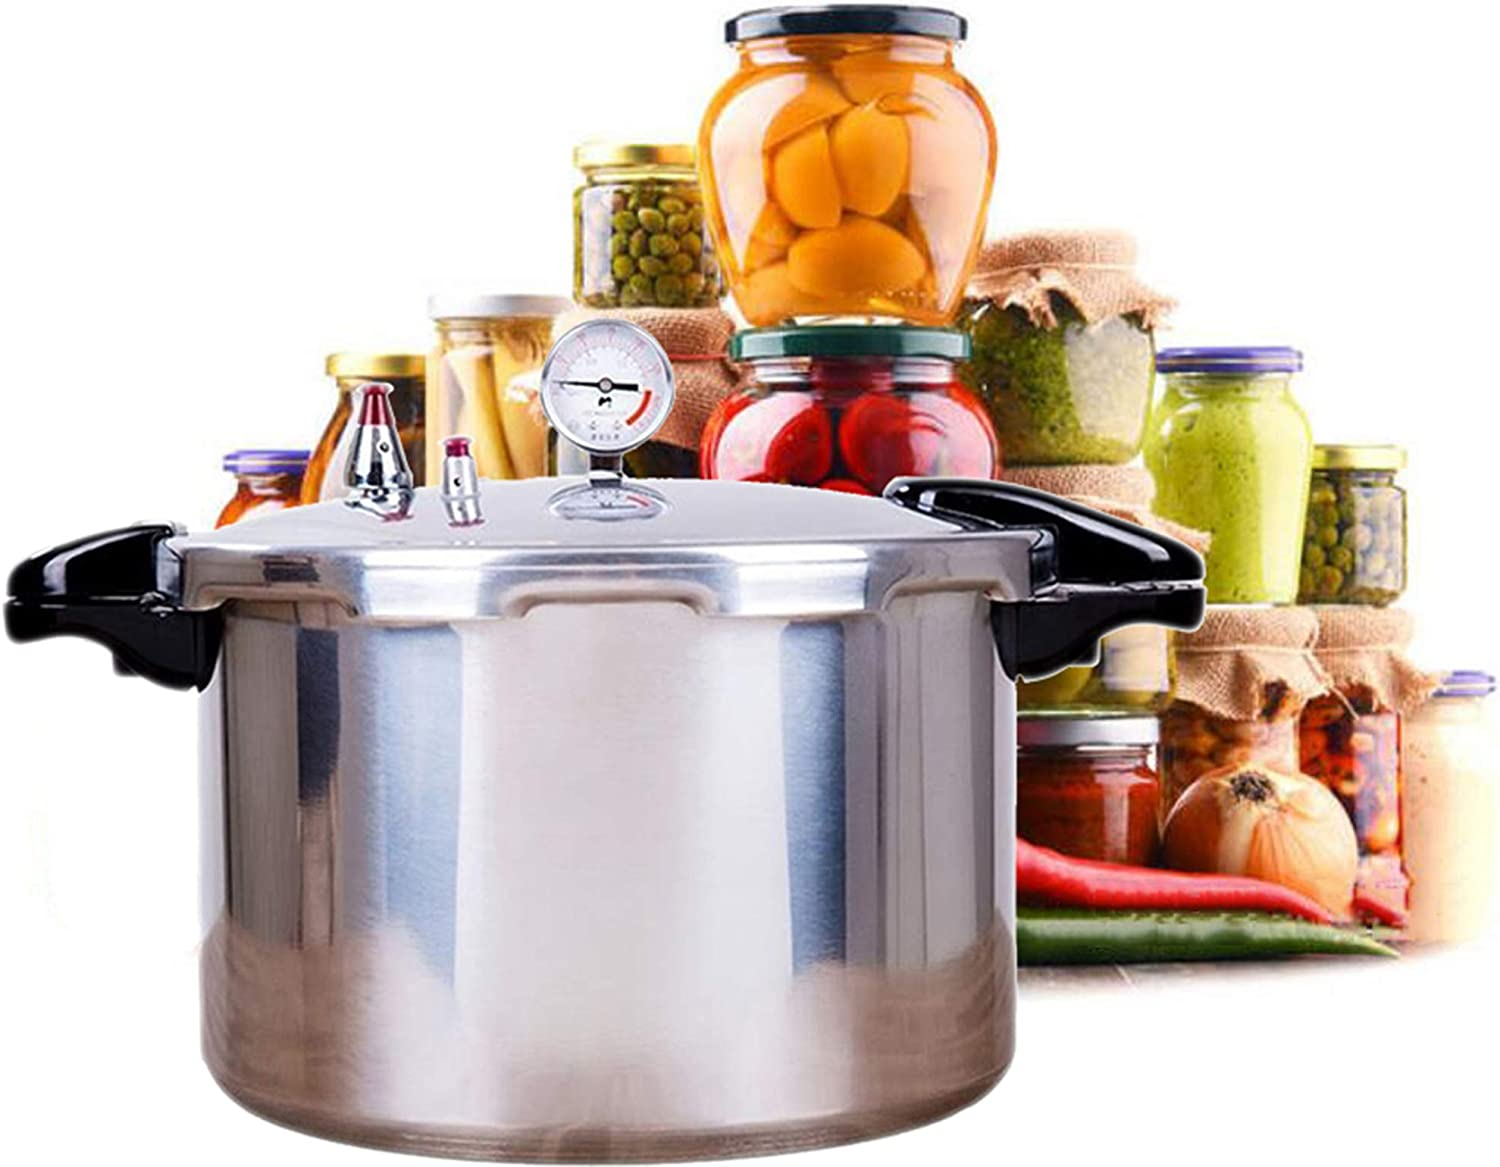 best pressure cooker for canning cooks essentials pressure cooker 22quart large capacity instant Suitable for hotel family kitchen Beef stew steamed canned Delivered to you within 3-5 days